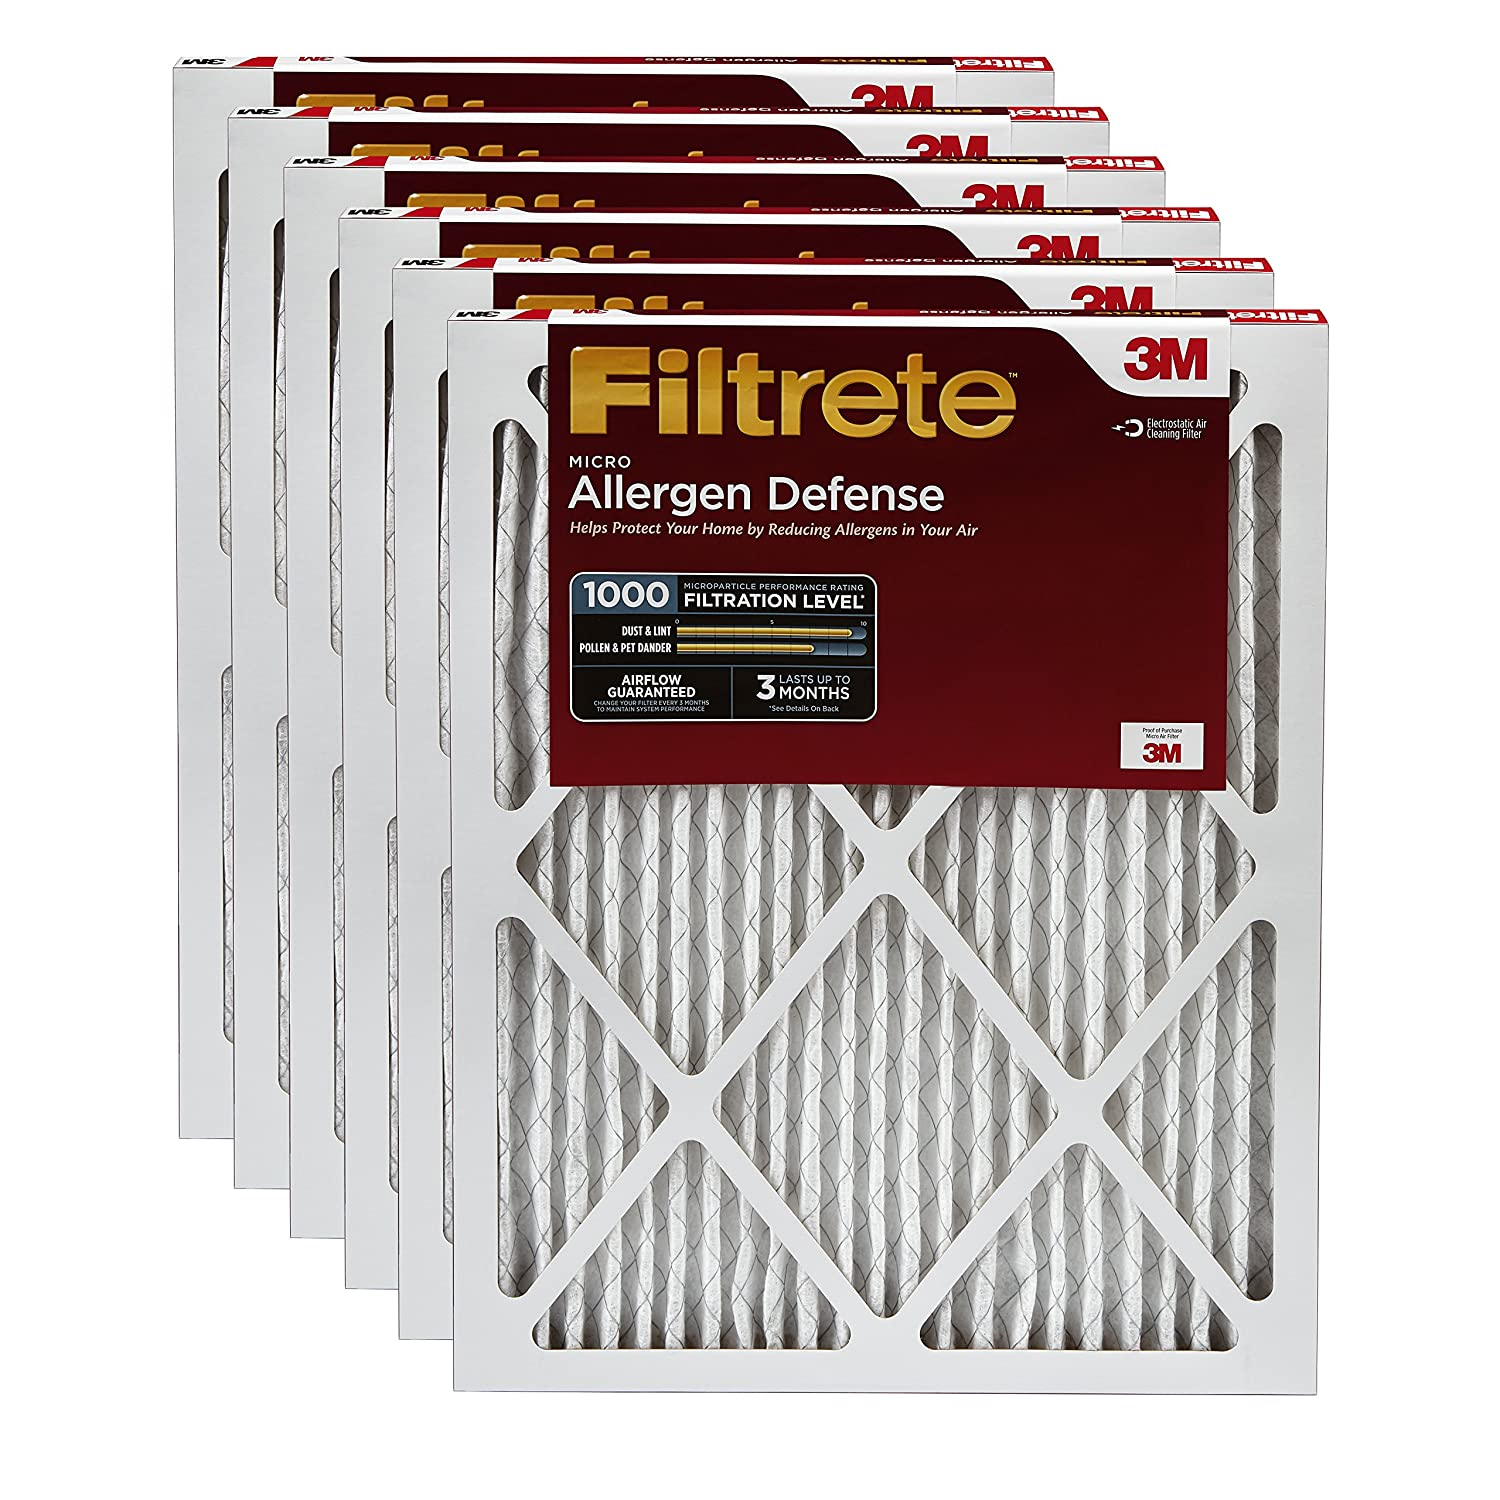 Filtrete 16x25x1, AC Furnace Air Filter, MPR 1000, Micro Allergen Defence, 6-Pack